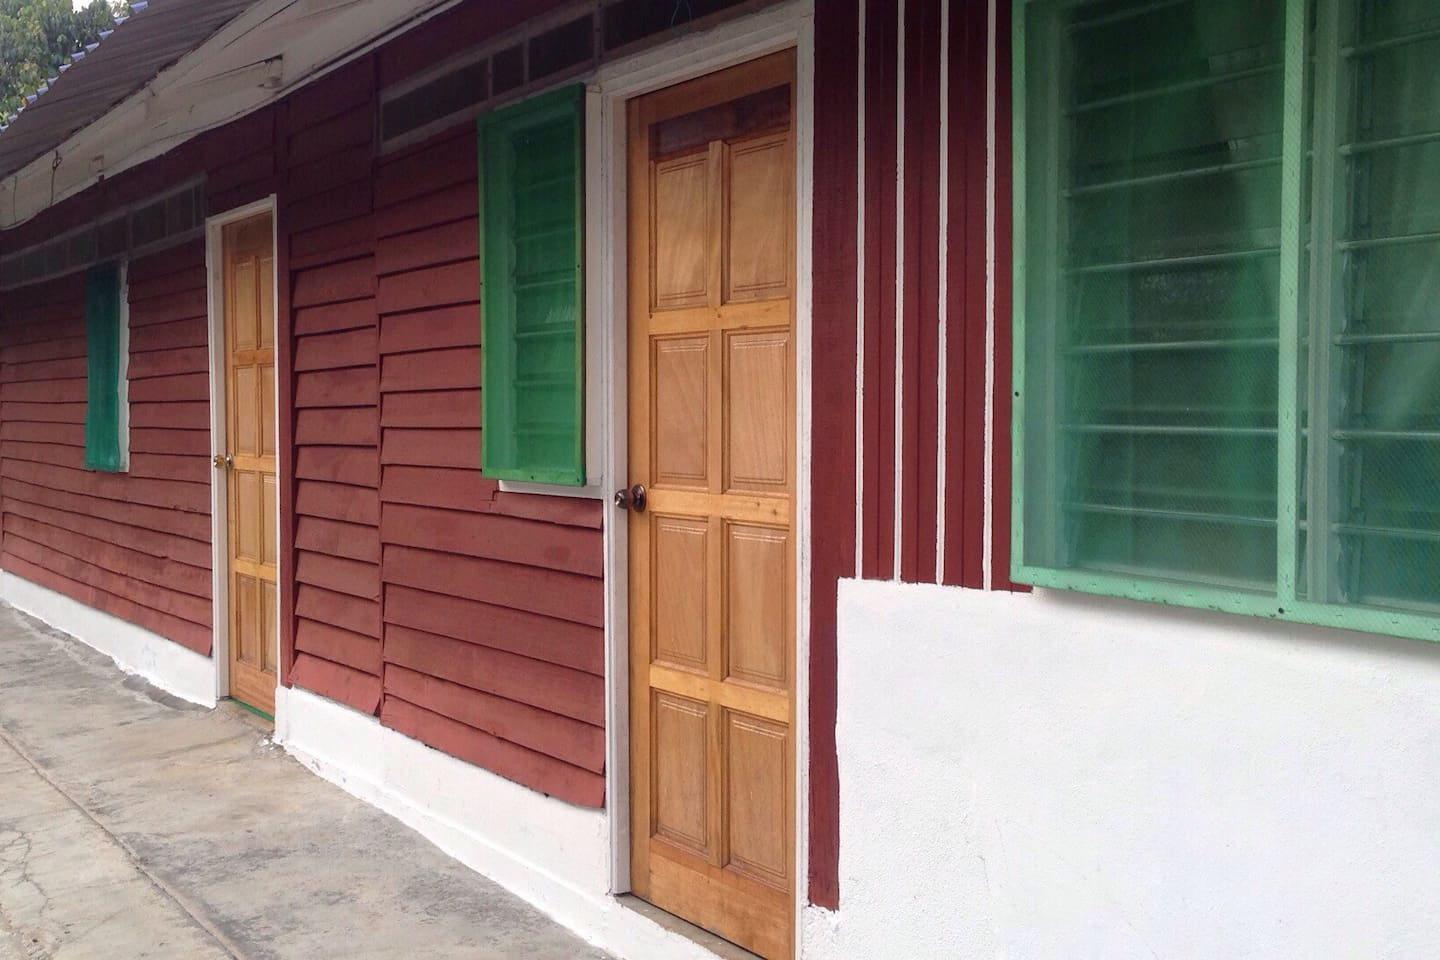 Our homestay units near farm owner's house